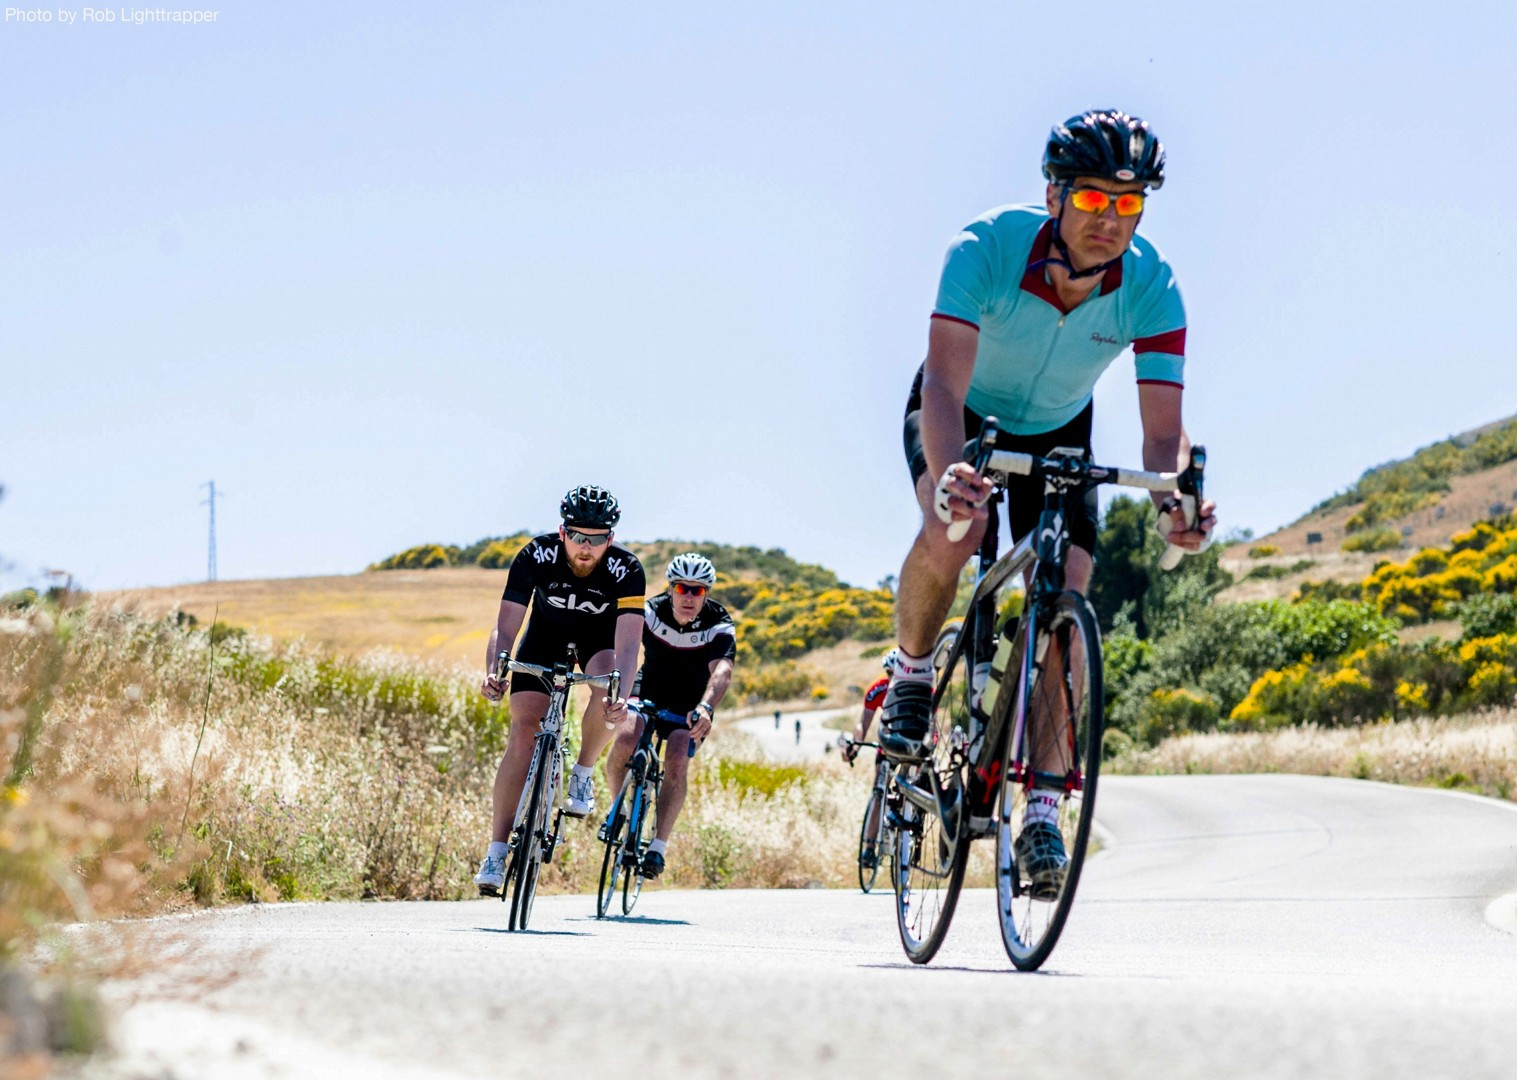 southern-spain-andalucia-cape-to-cape-traverse-guided-road-cycling-holiday.jpg - Southern Spain - Andalucia - Cape to Cape Traverse - Guided Road Cycling Holiday - Road Cycling